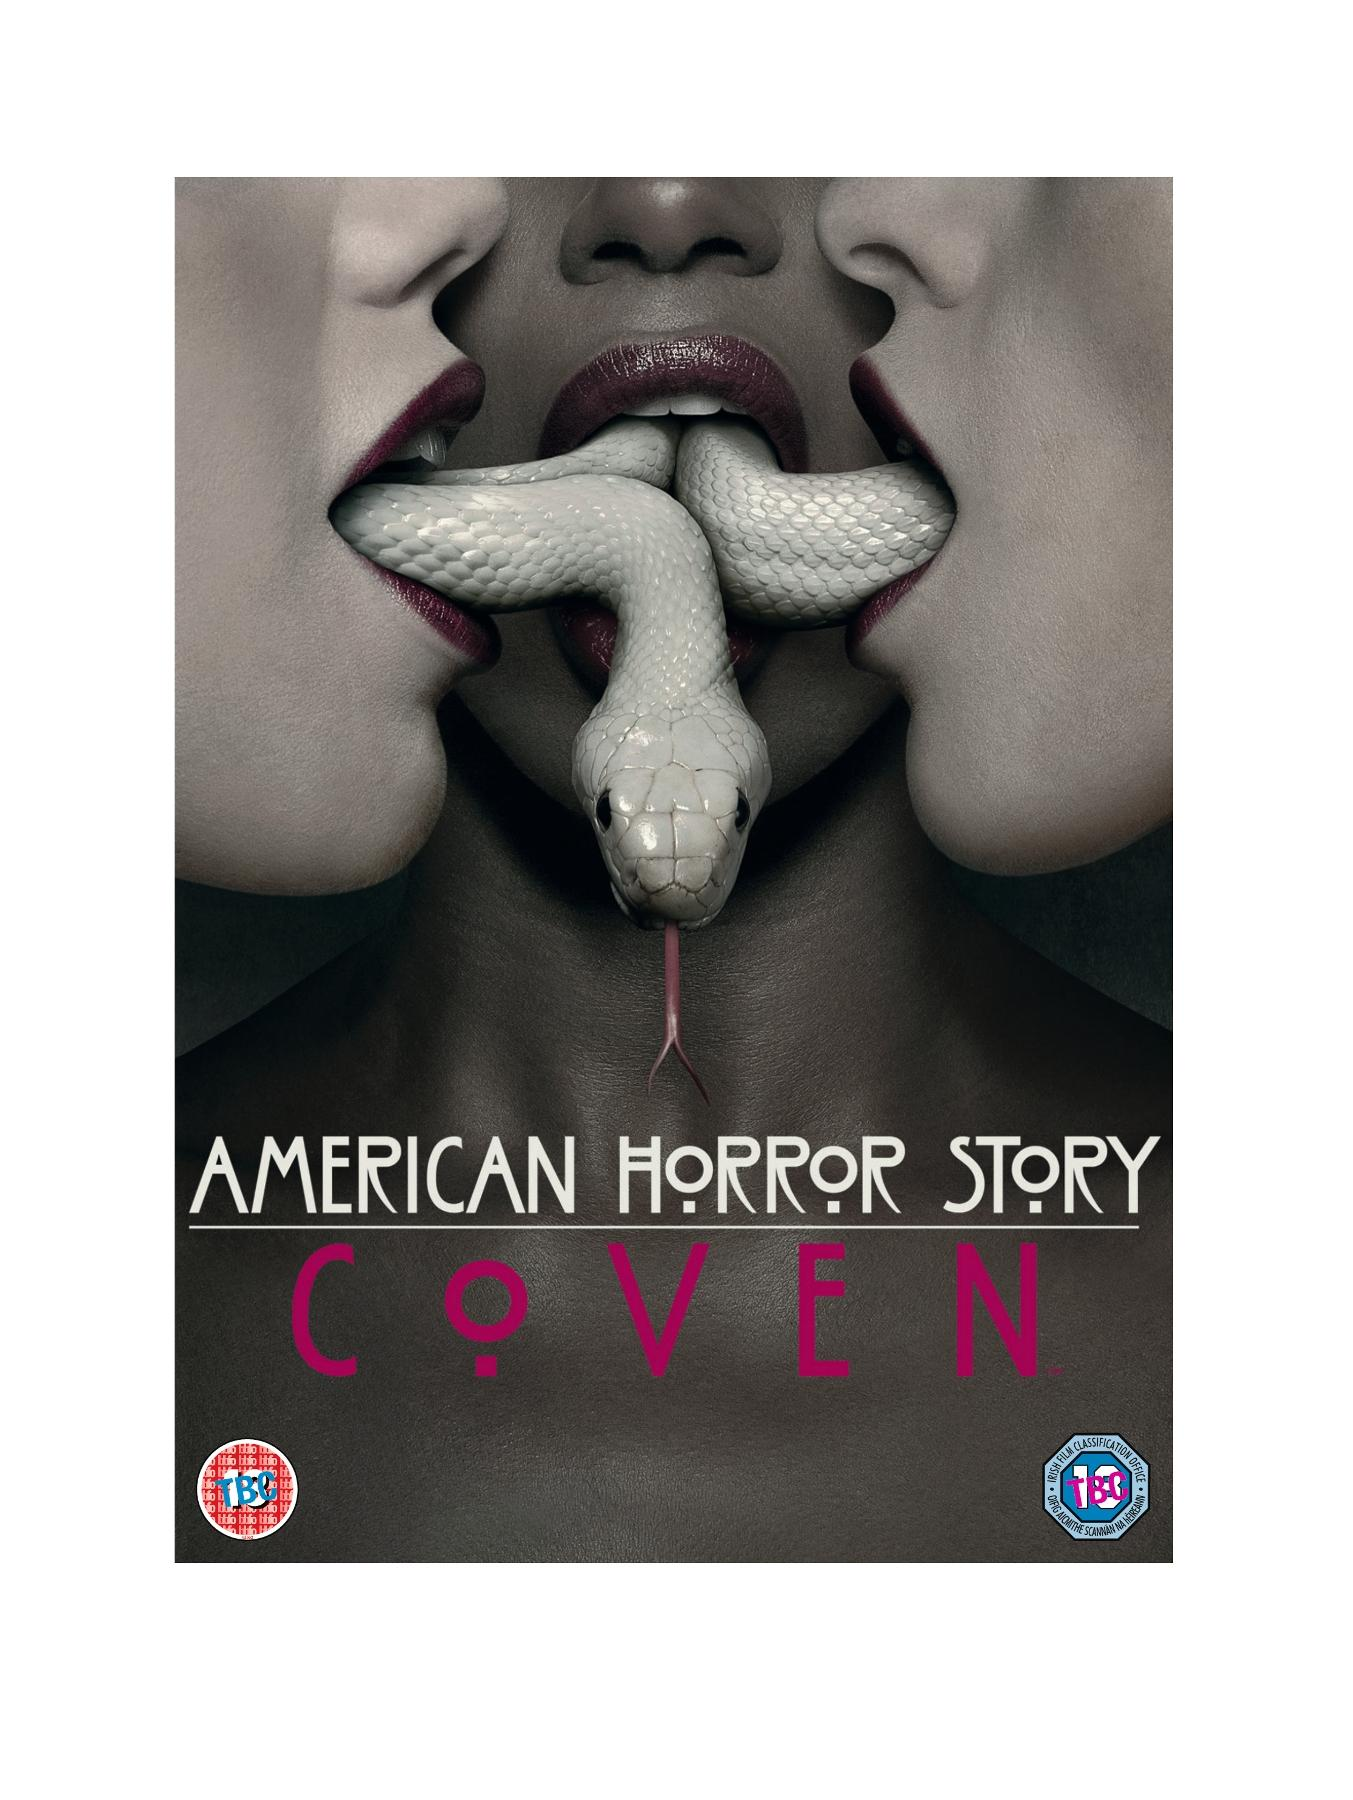 American Horror Story: Coven DVD